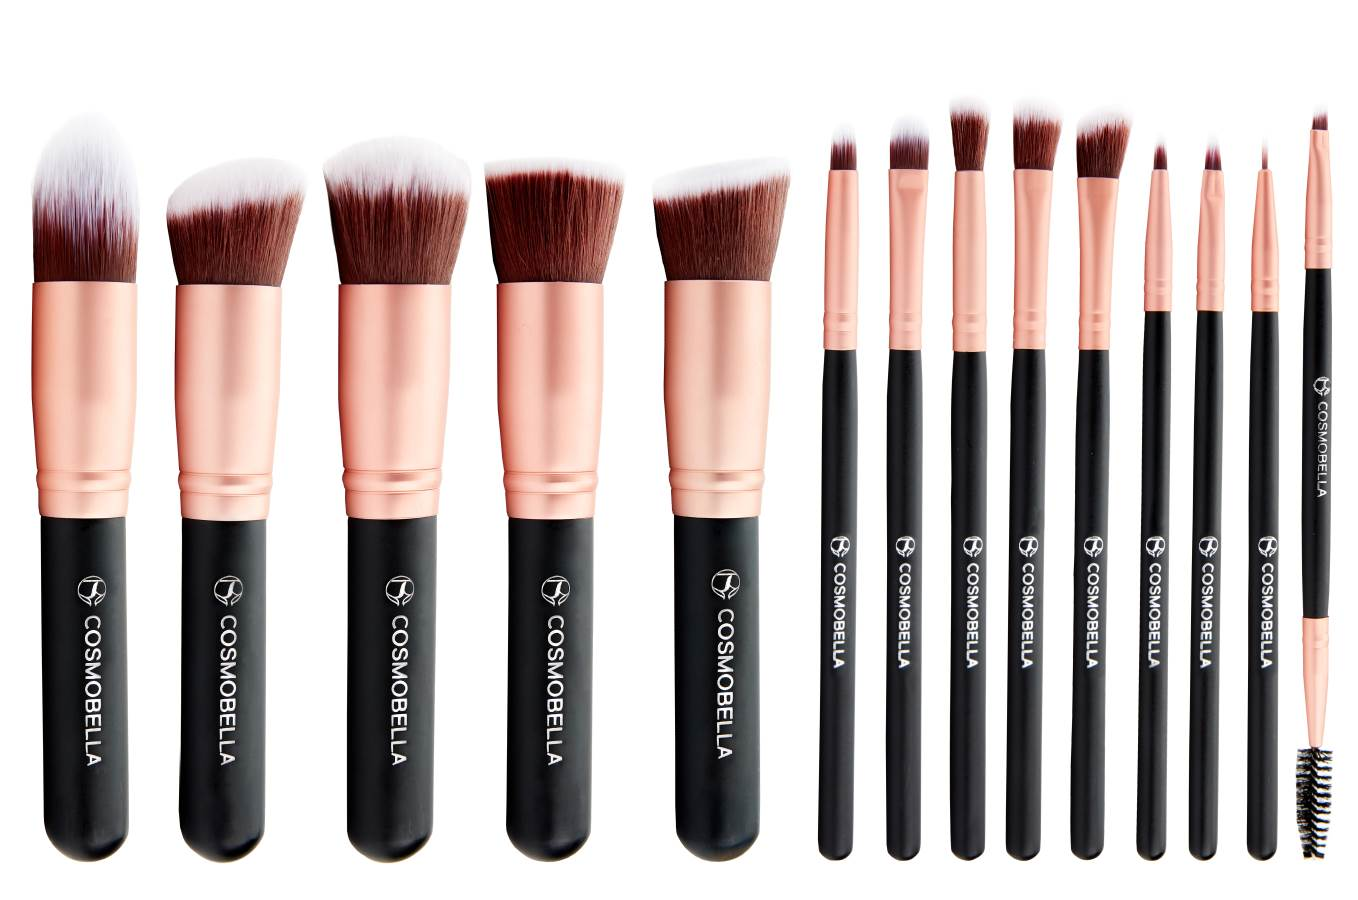 bb40b790bafa Cosmobella Beauty - Premium Kabuki Makeup Brush Set (14Pcs)